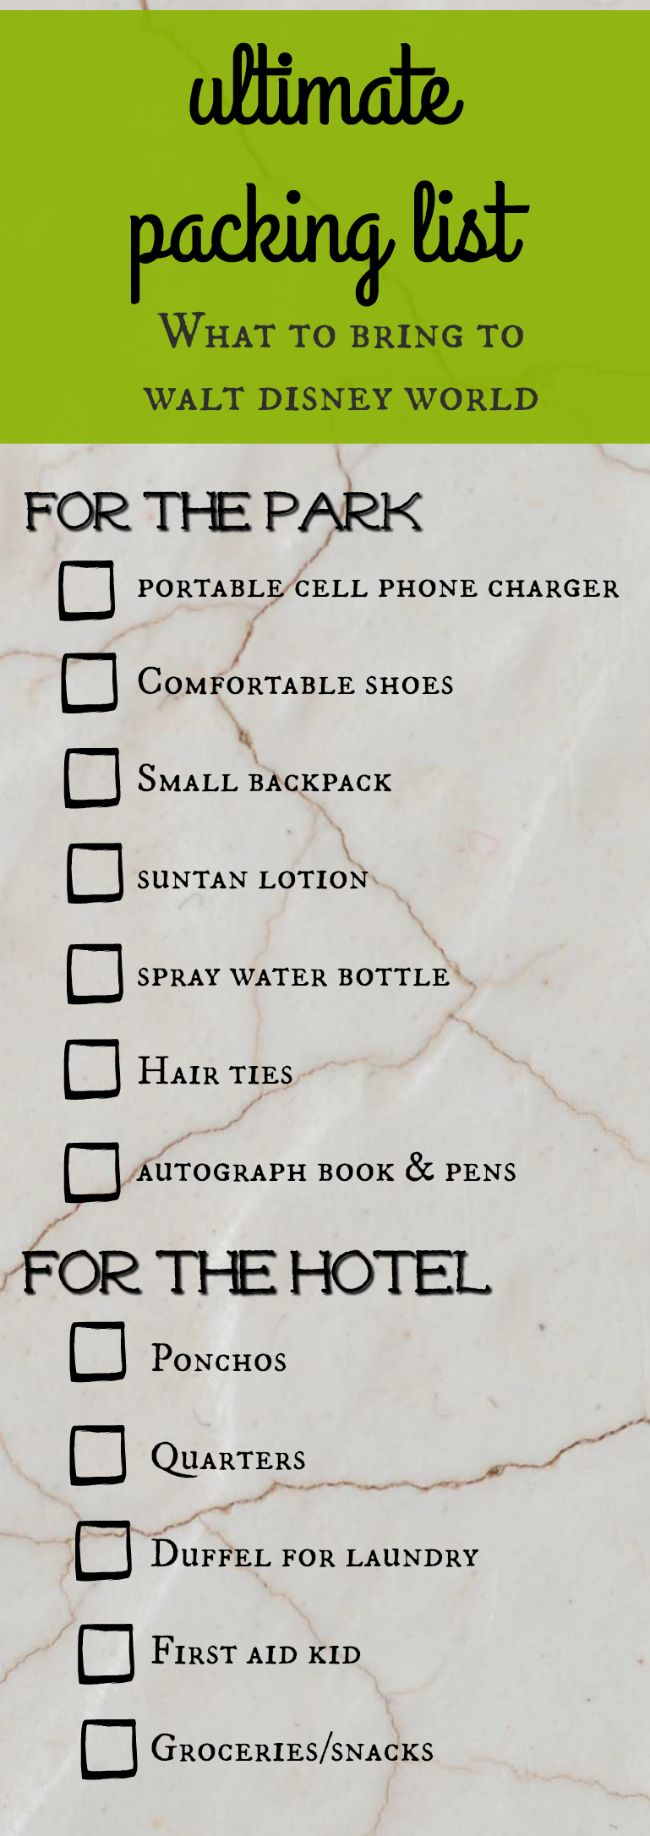 Disney World Packing List - all the extras you wouldn't think to bring!